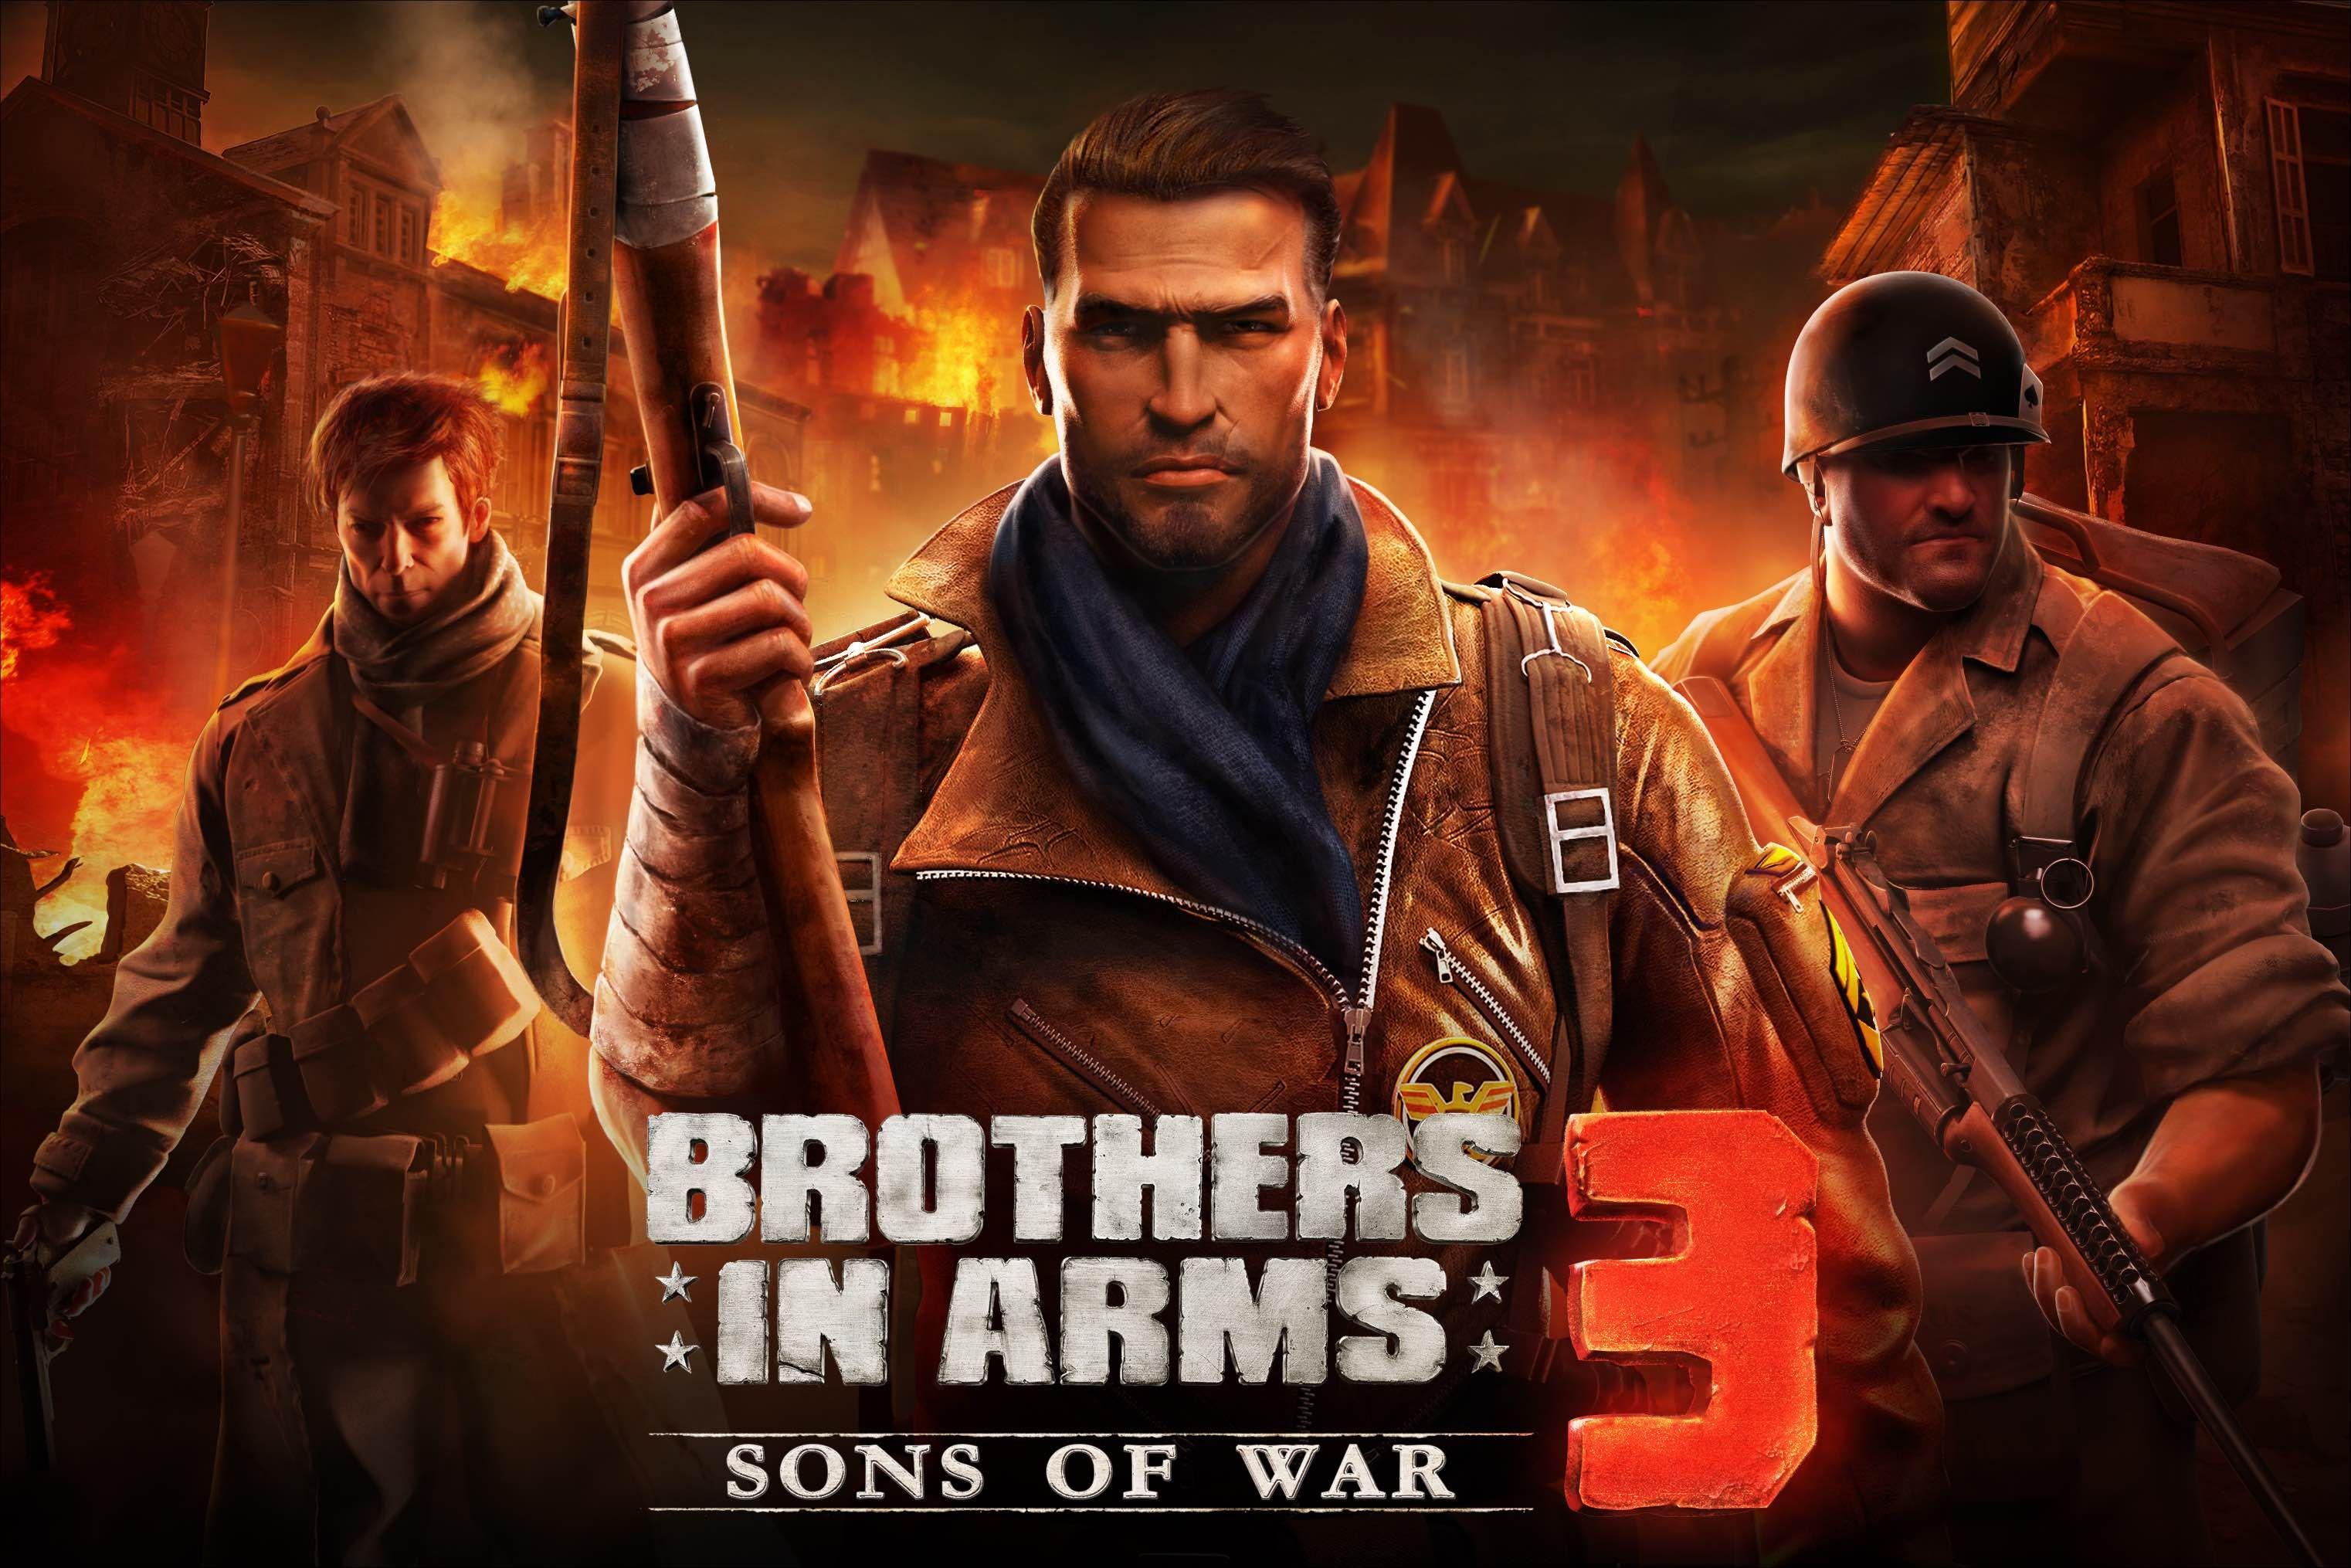 Gameloft releases Brothers in Arms 3: Sons of War - www mobilga com